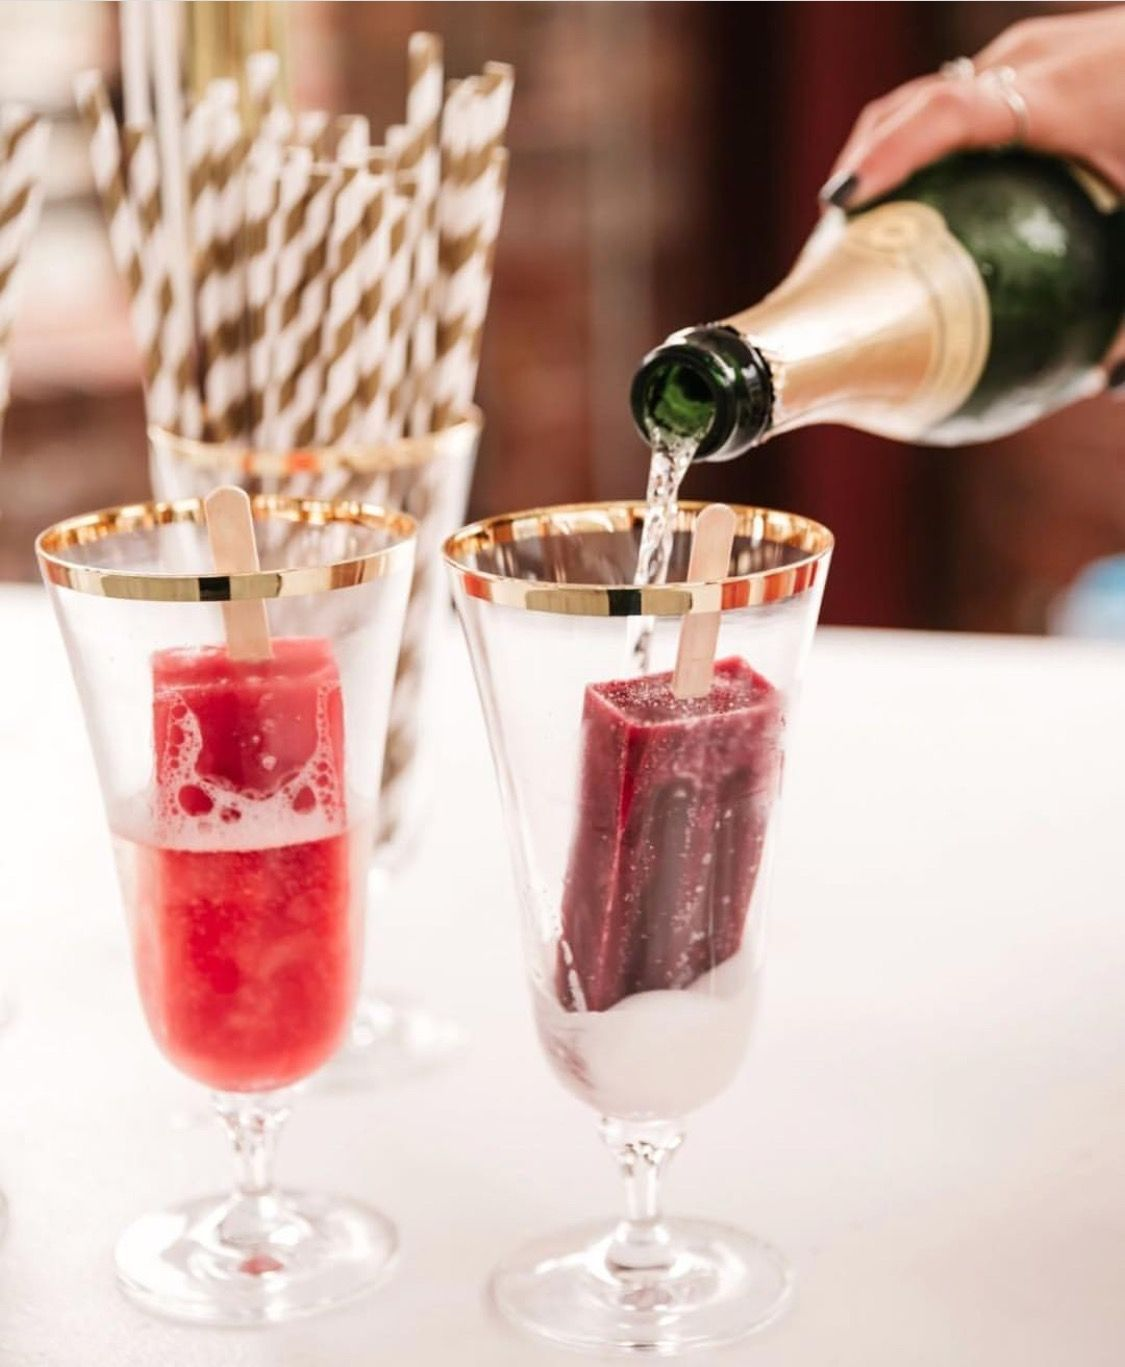 Is there any combo more fun than champagne +popsicles?? IF you think of one, let us know because we can't! #champagnepopsicles Is there any combo more fun than champagne +popsicles?? IF you think of one, let us know because we can't! #champagnepopsicles